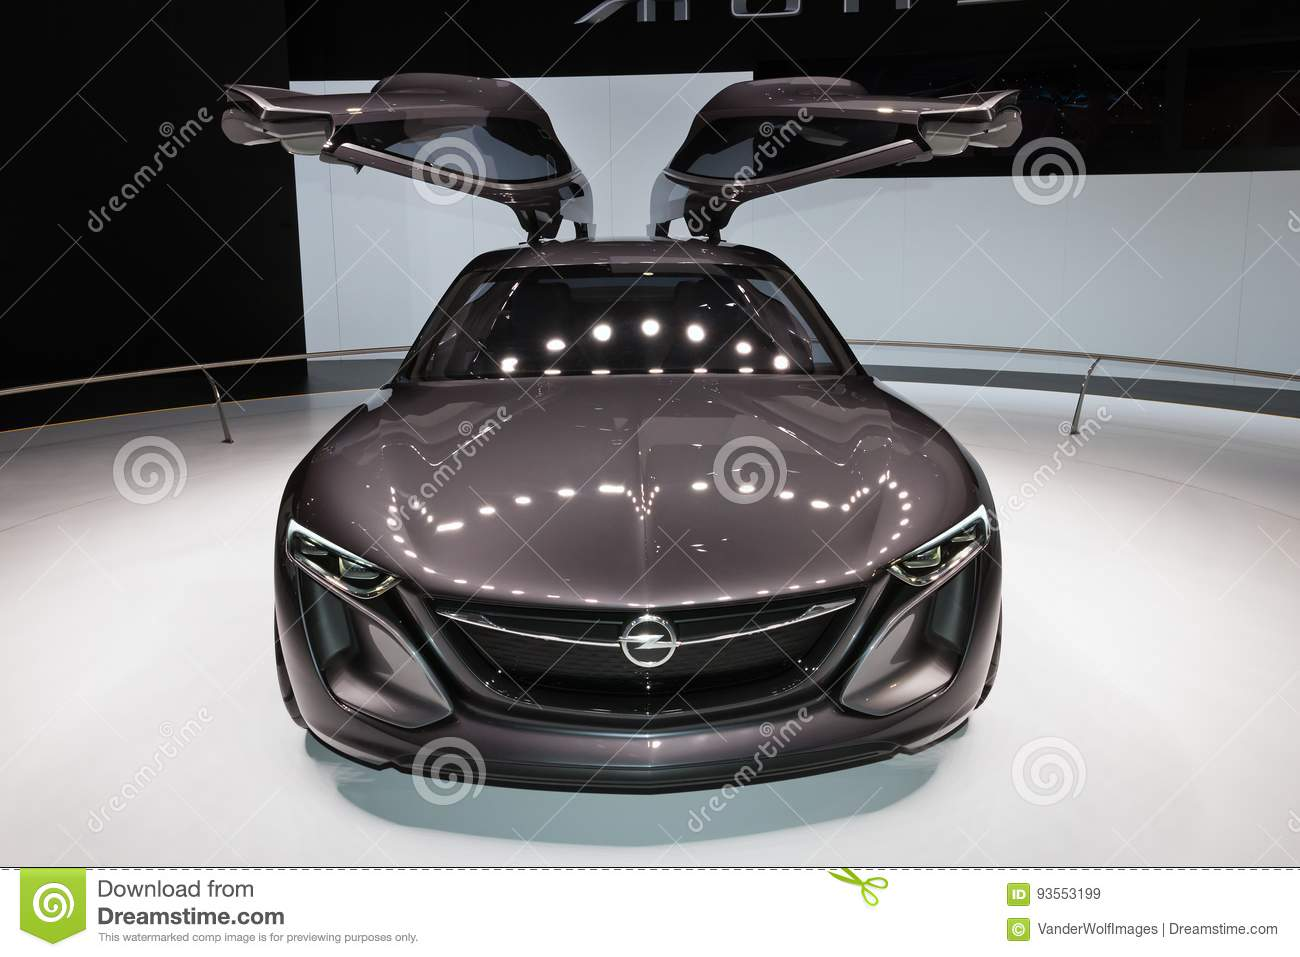 Opel Monza Car Editorial Stock Image Image Of Salon 93553199